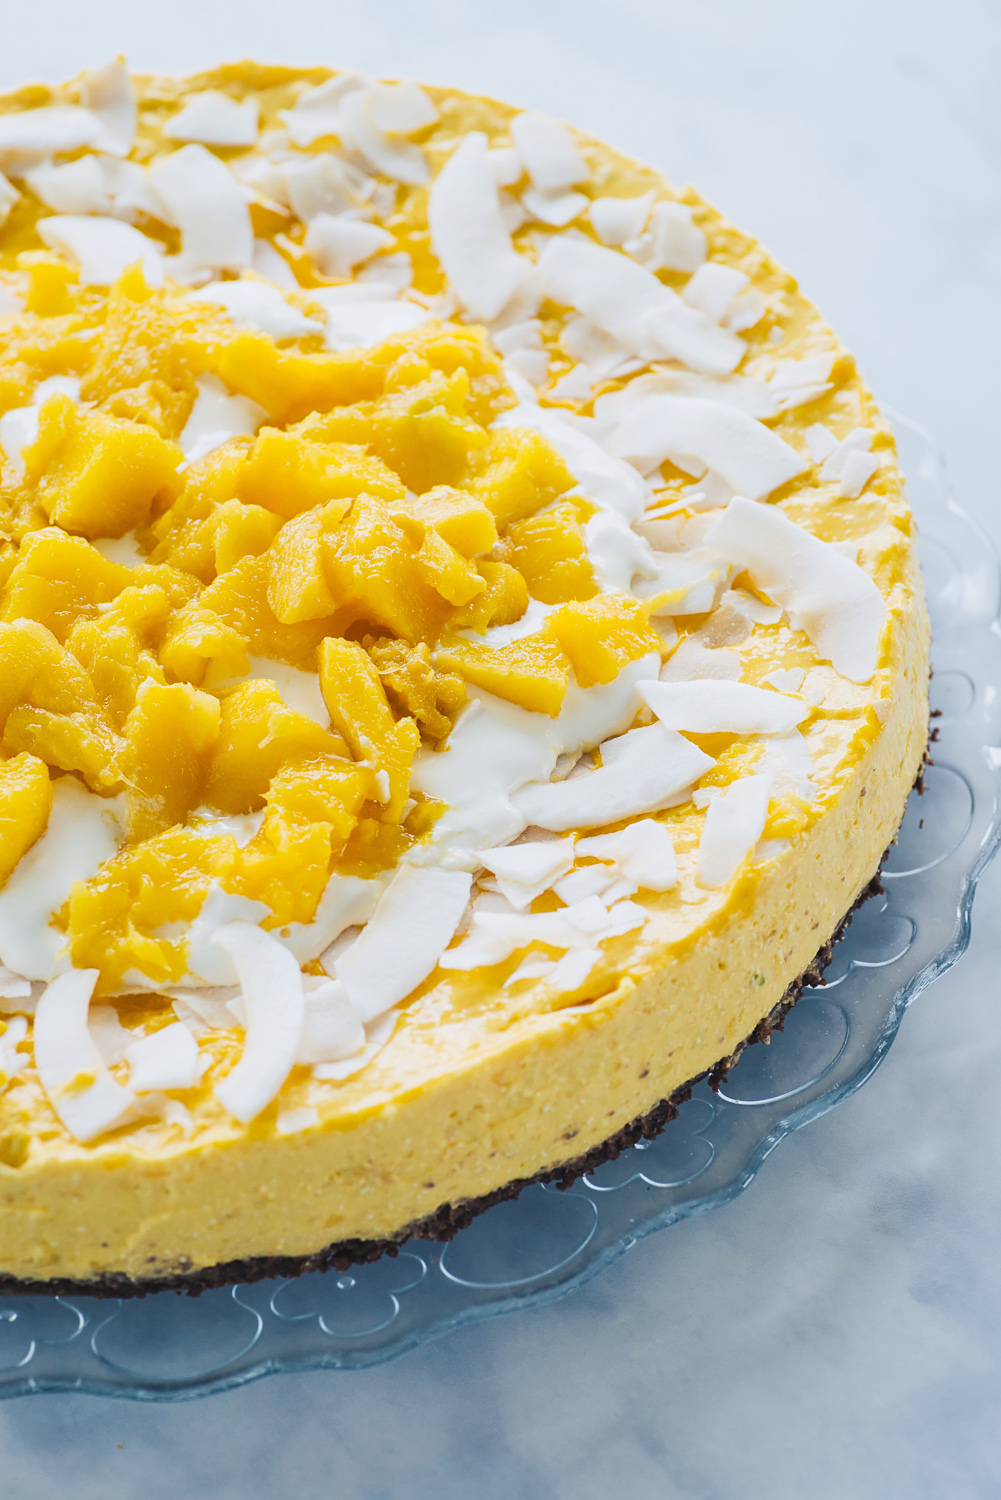 A recipe for a tasty and fresh No Bake Mango Cheesecake that you can make with canned mango pulp | Mondomulia Blog